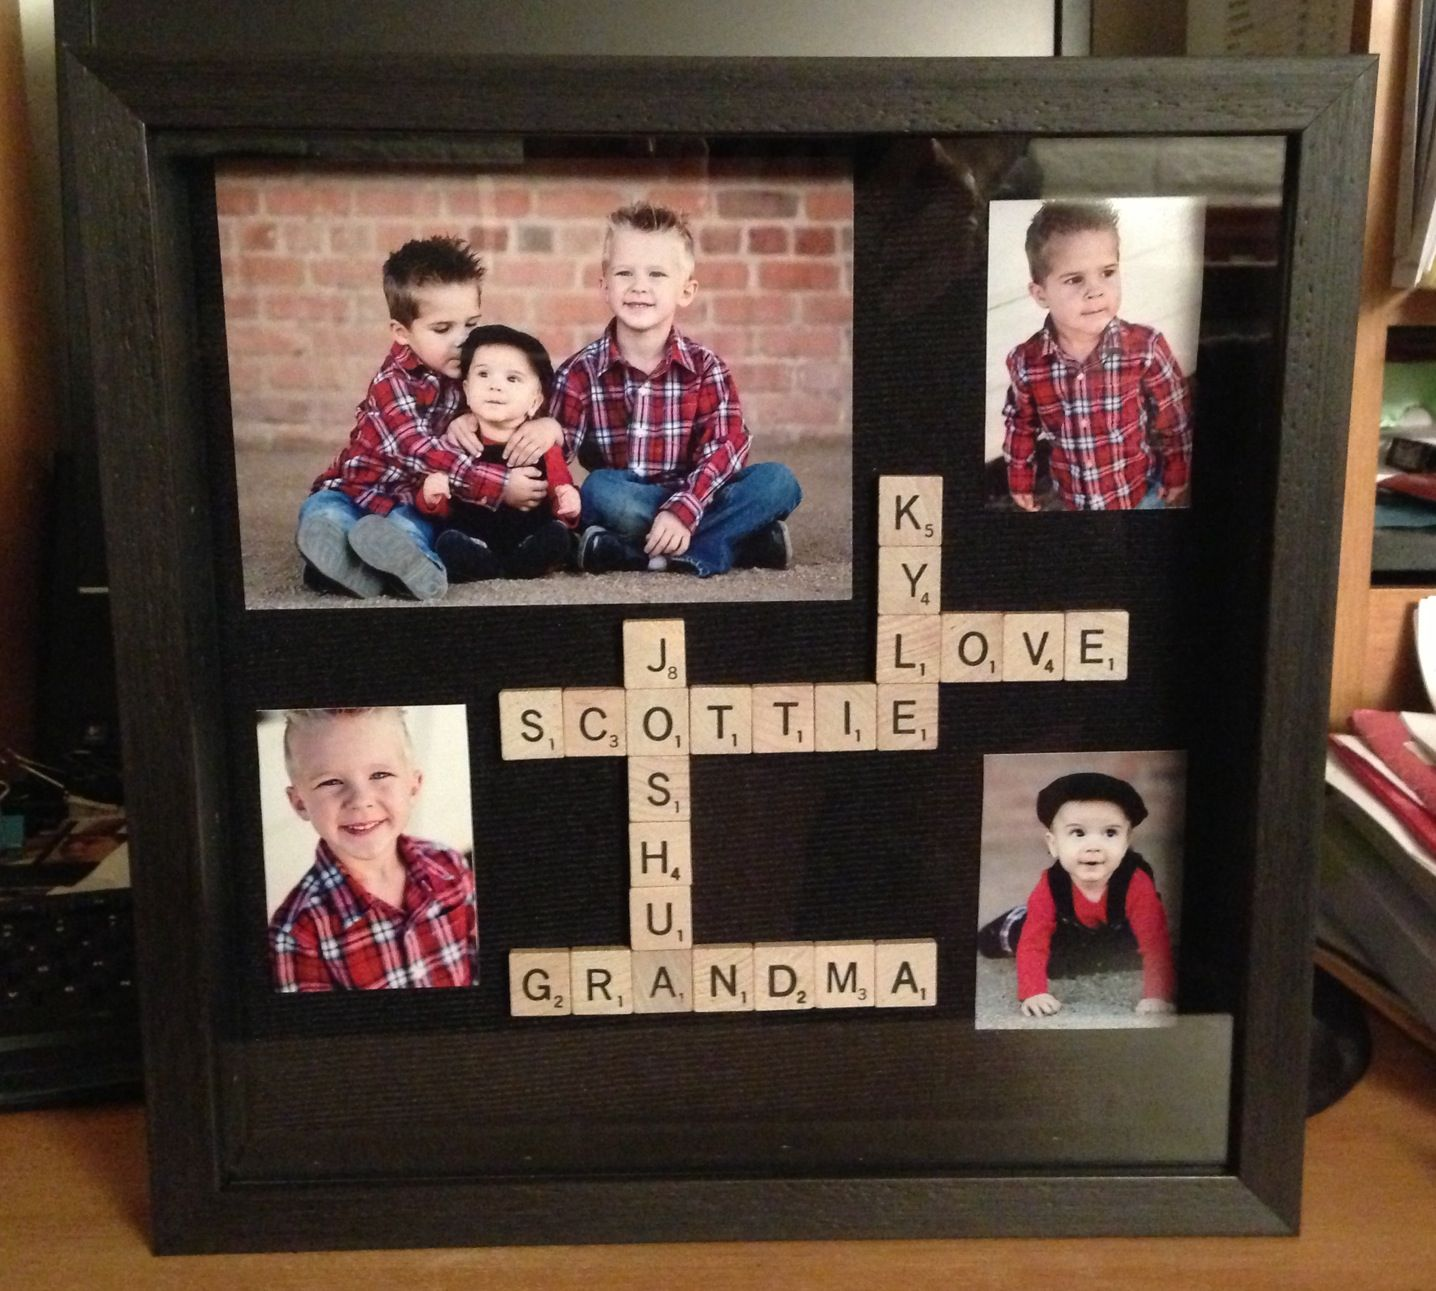 Pin By Samantha Wetter On Diy Diy Gifts For Grandma Christmas Gifts For Grandma Family Christmas Gifts